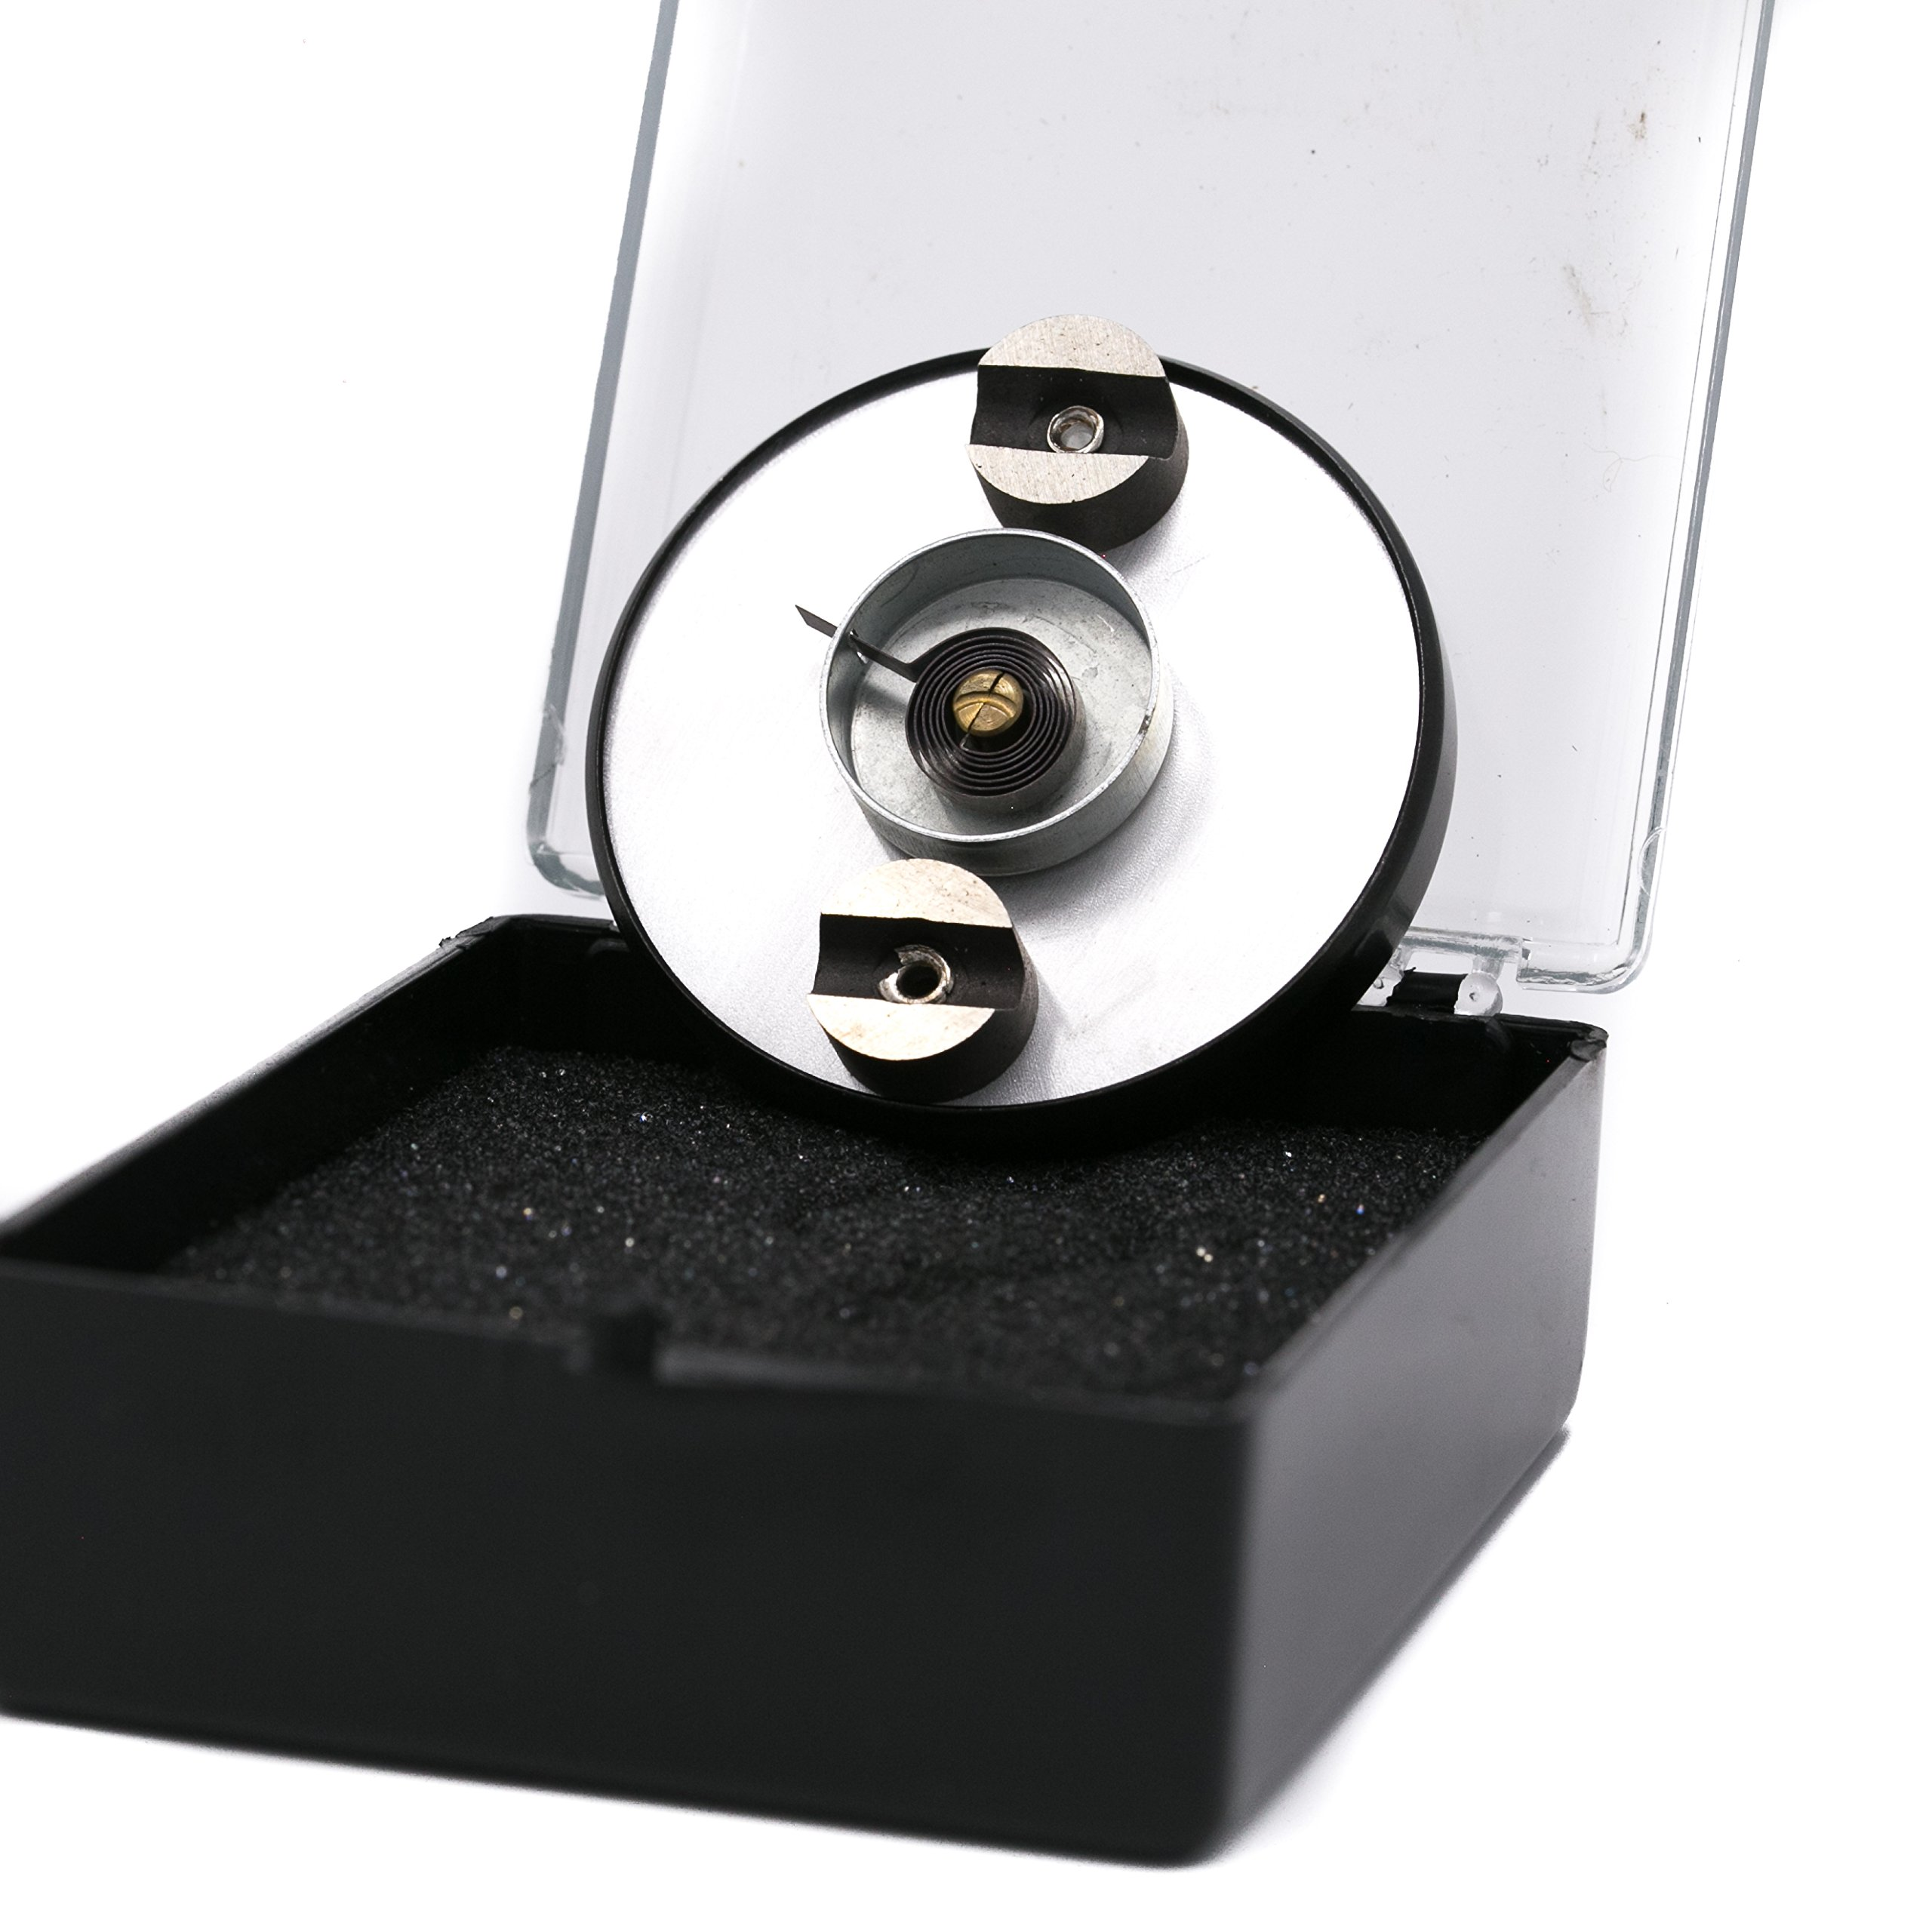 PIC Gauge B2MS-S 2'' Dial Size, 150/750°F, Surface Mount, Magnetic Connection, Black Steel Case Surface Mount Thermometer